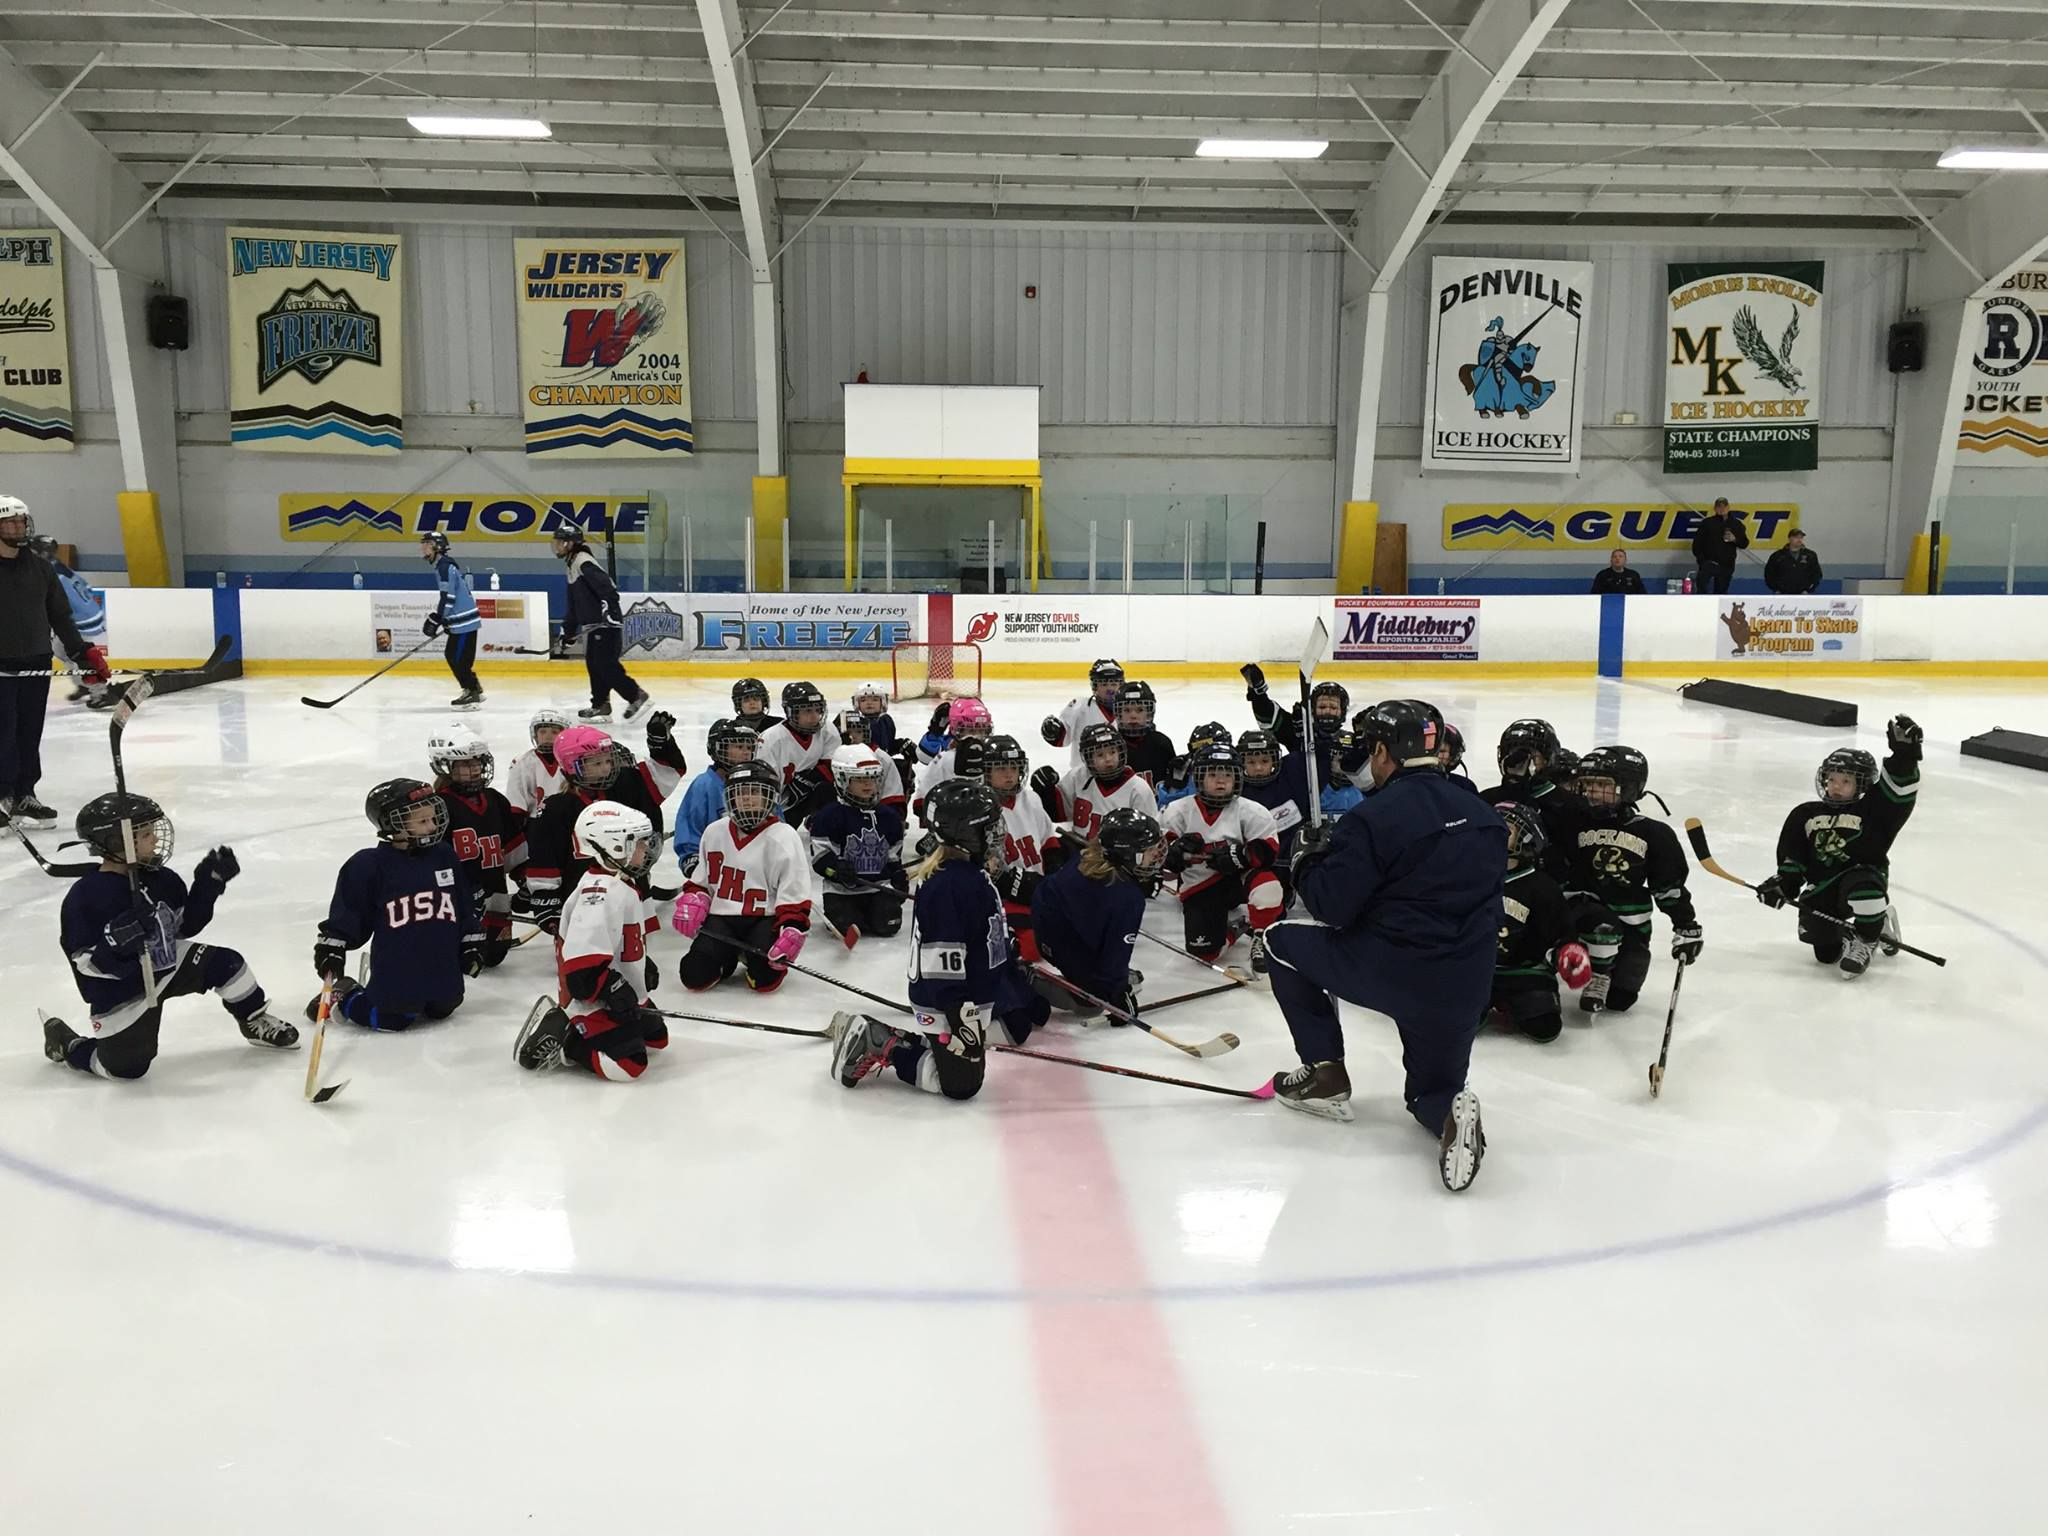 January 4, 2016 -  LVCM Youth Ice Hockey Club  hosted a Mini-Mite Jamboree consisting of approximately twenty 4-6 year-olds at  ASPEN ICE at Randolph ! Thank you for joining us!